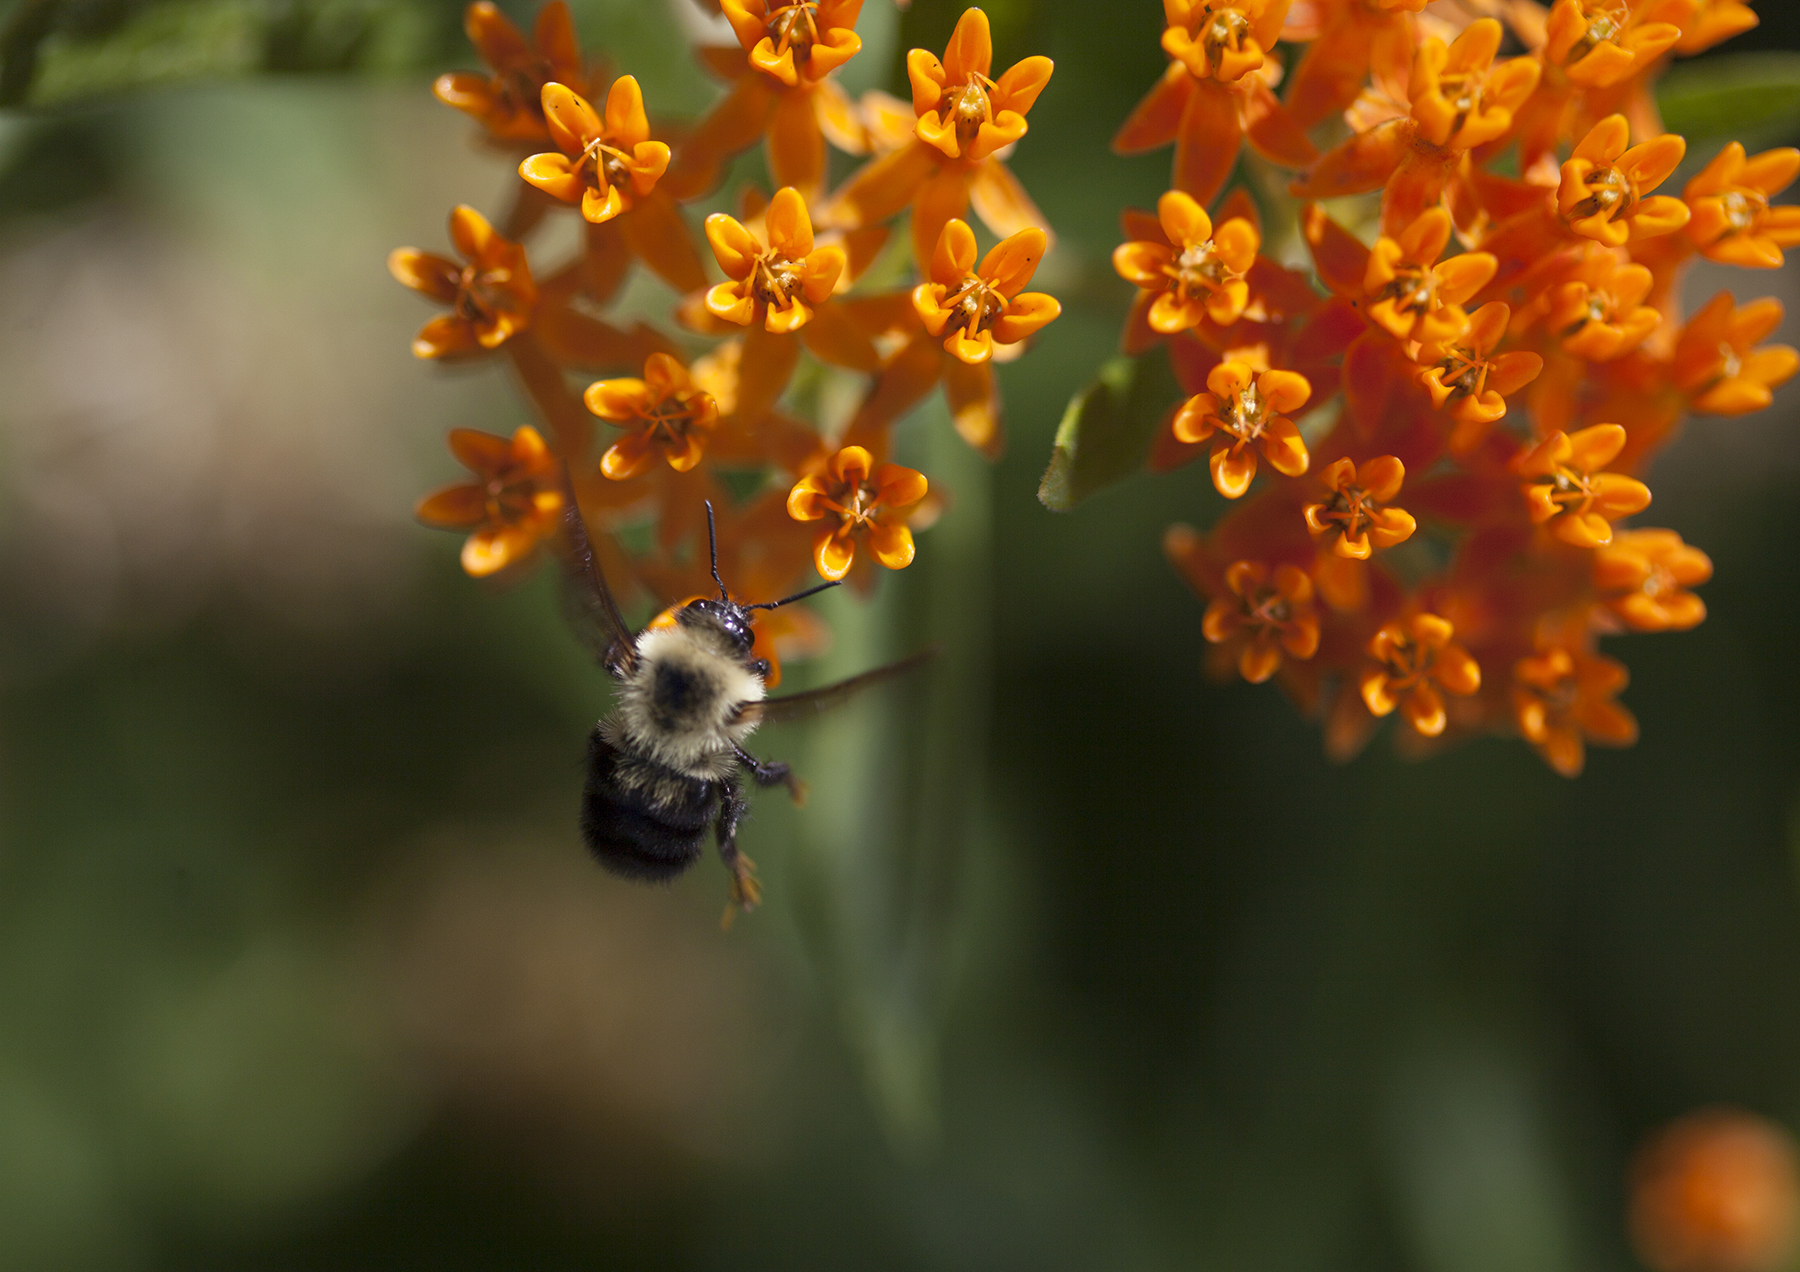 Bumble bee on butterfly weed, the main pollinator of blue berries